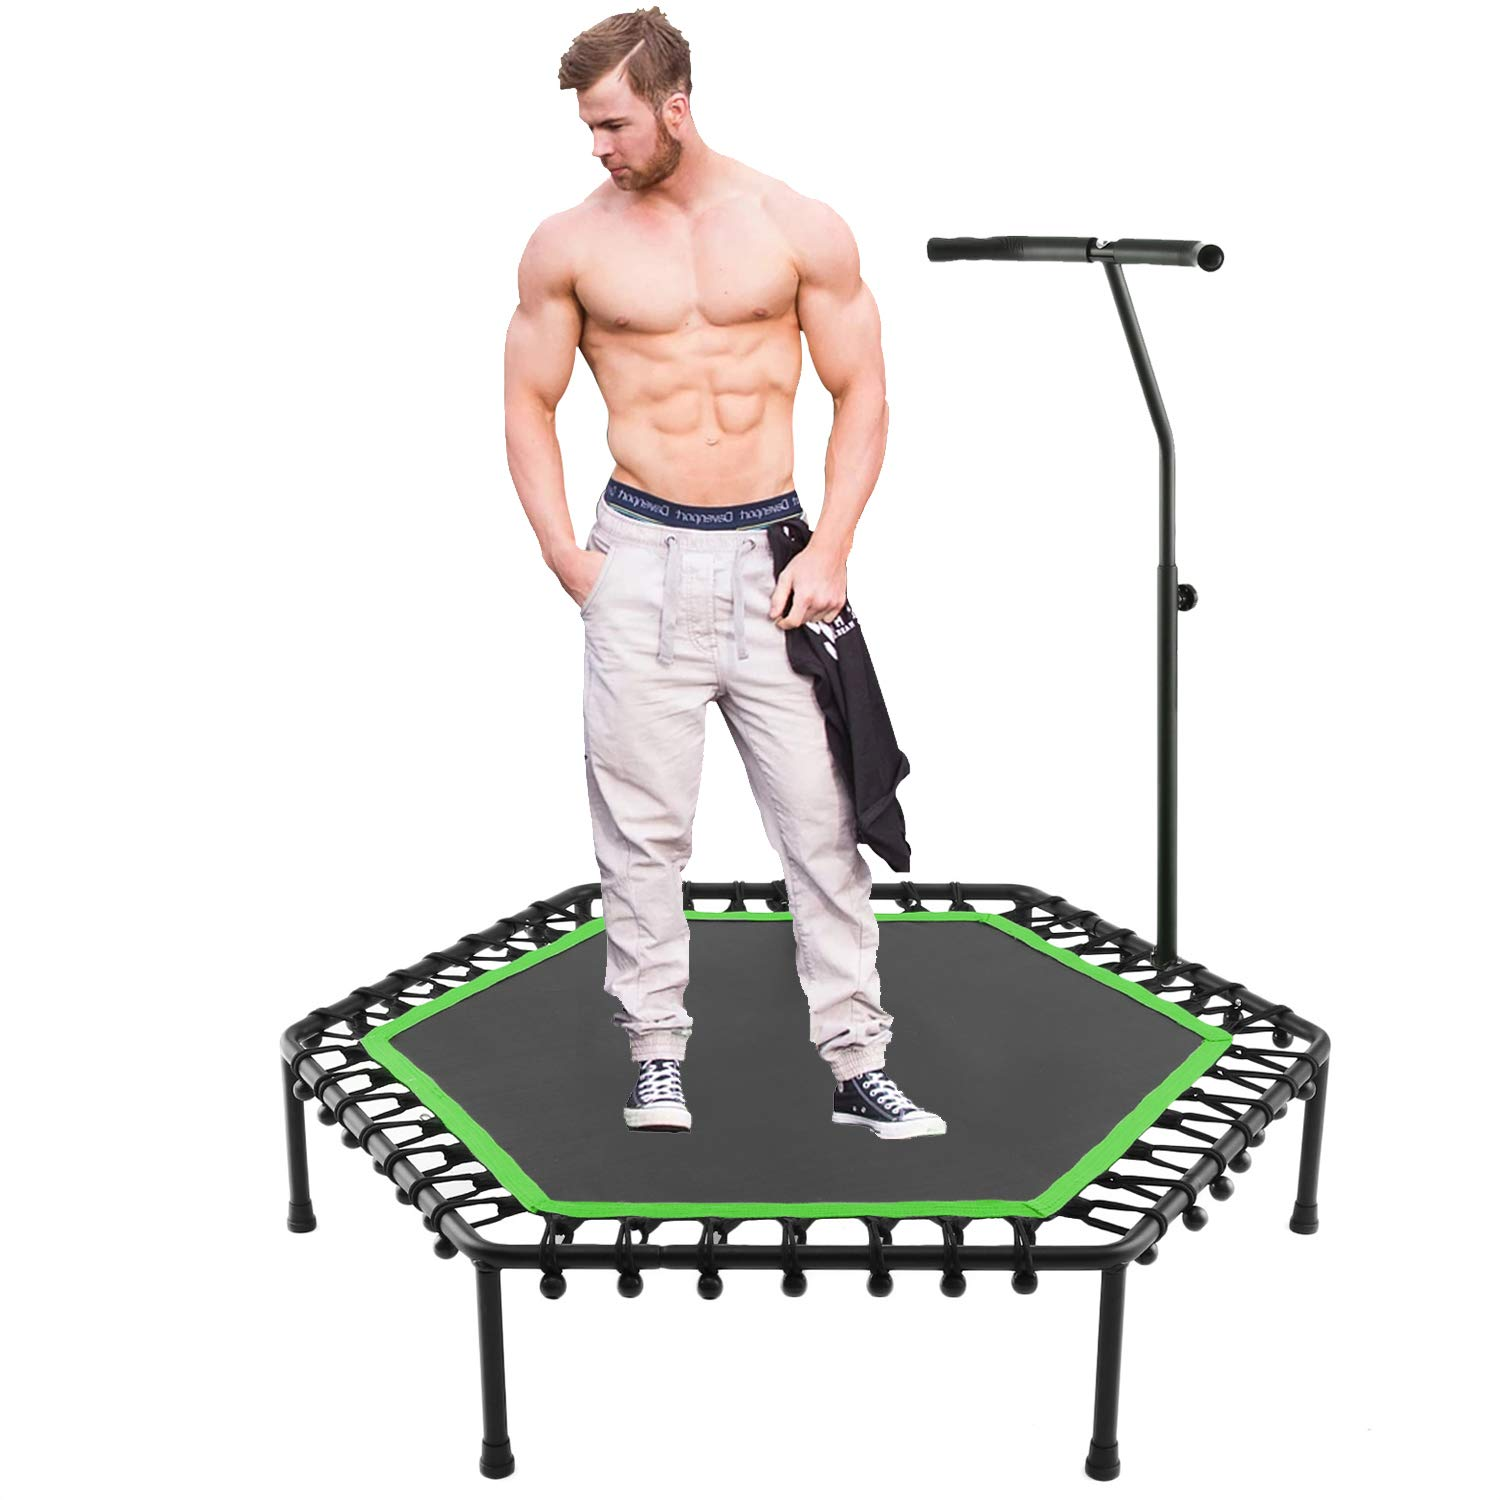 50'' Silent Rebounders Mini Trampolines Exercise Indoor with Adjustable Handrail for Adults Kids Max 220 lbs